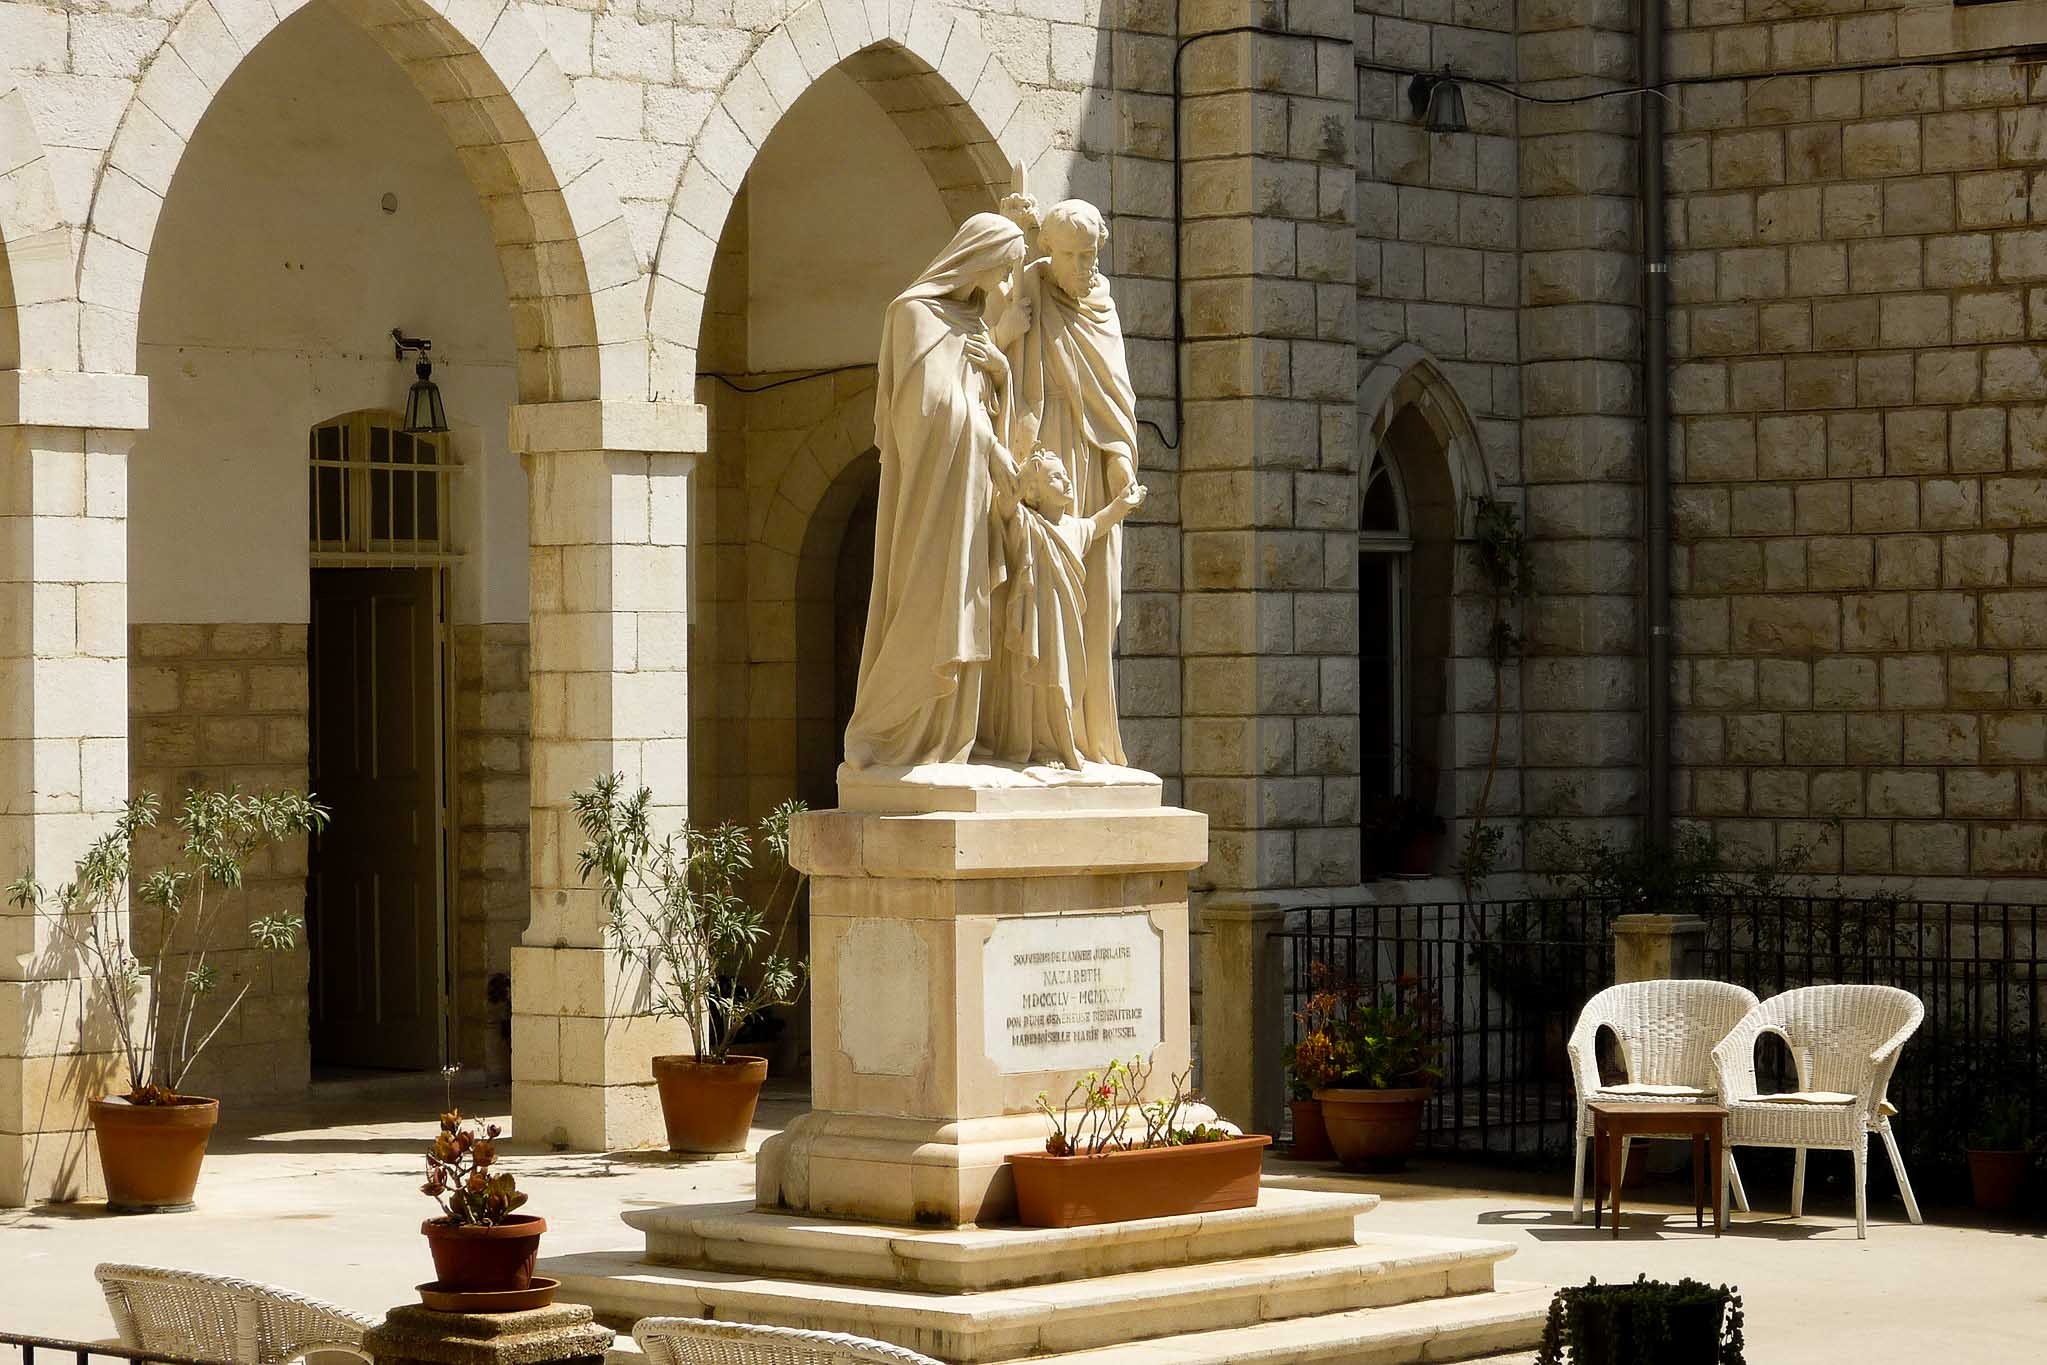 Sisters of Nazareth Convent, Israel. Monastery Stays Which Brings Wanderlust